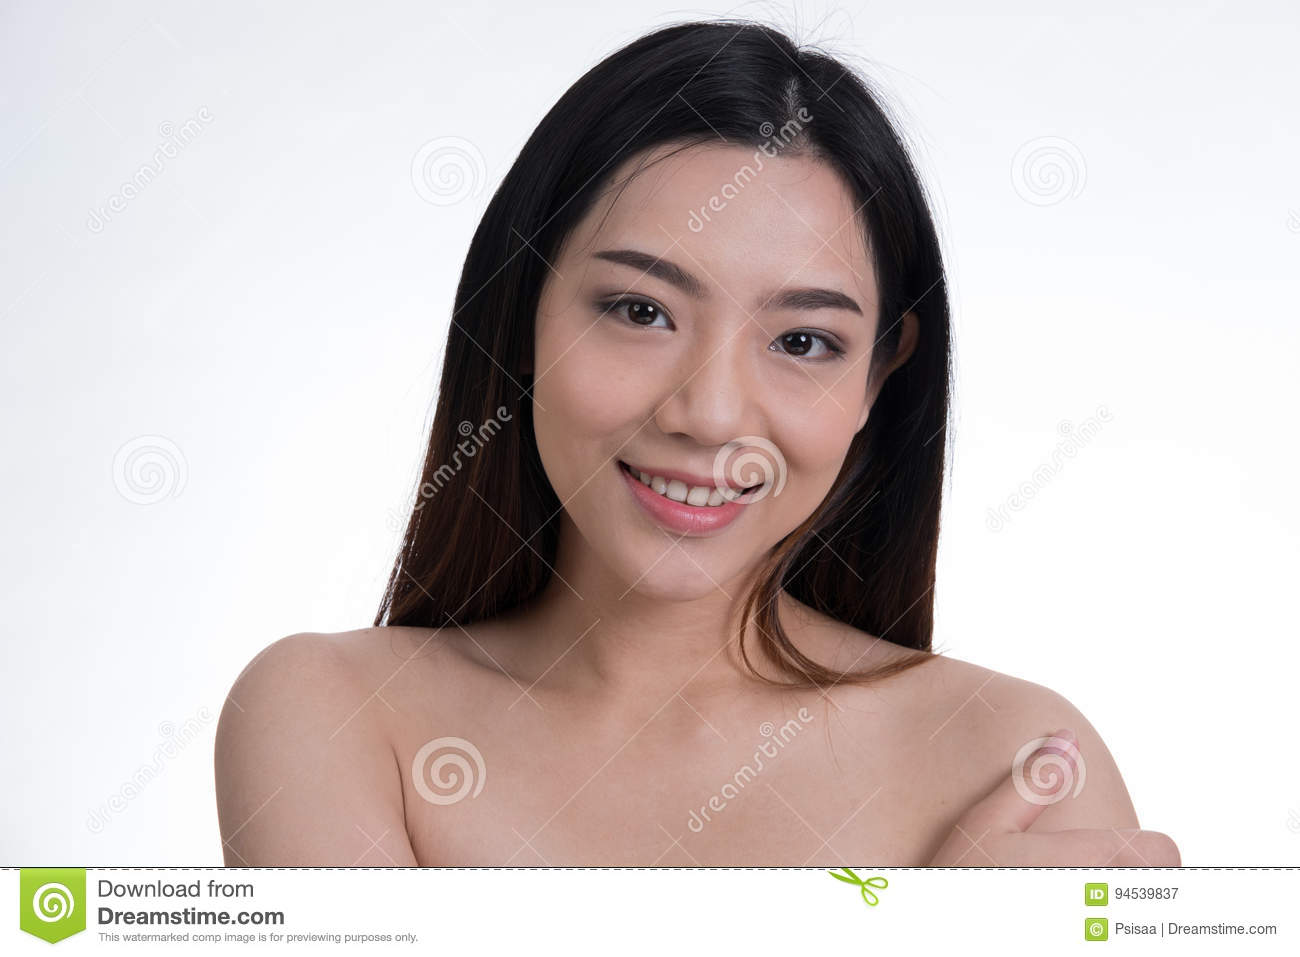 Nude Young Beautiful Girl With Natural Make Up Smiling